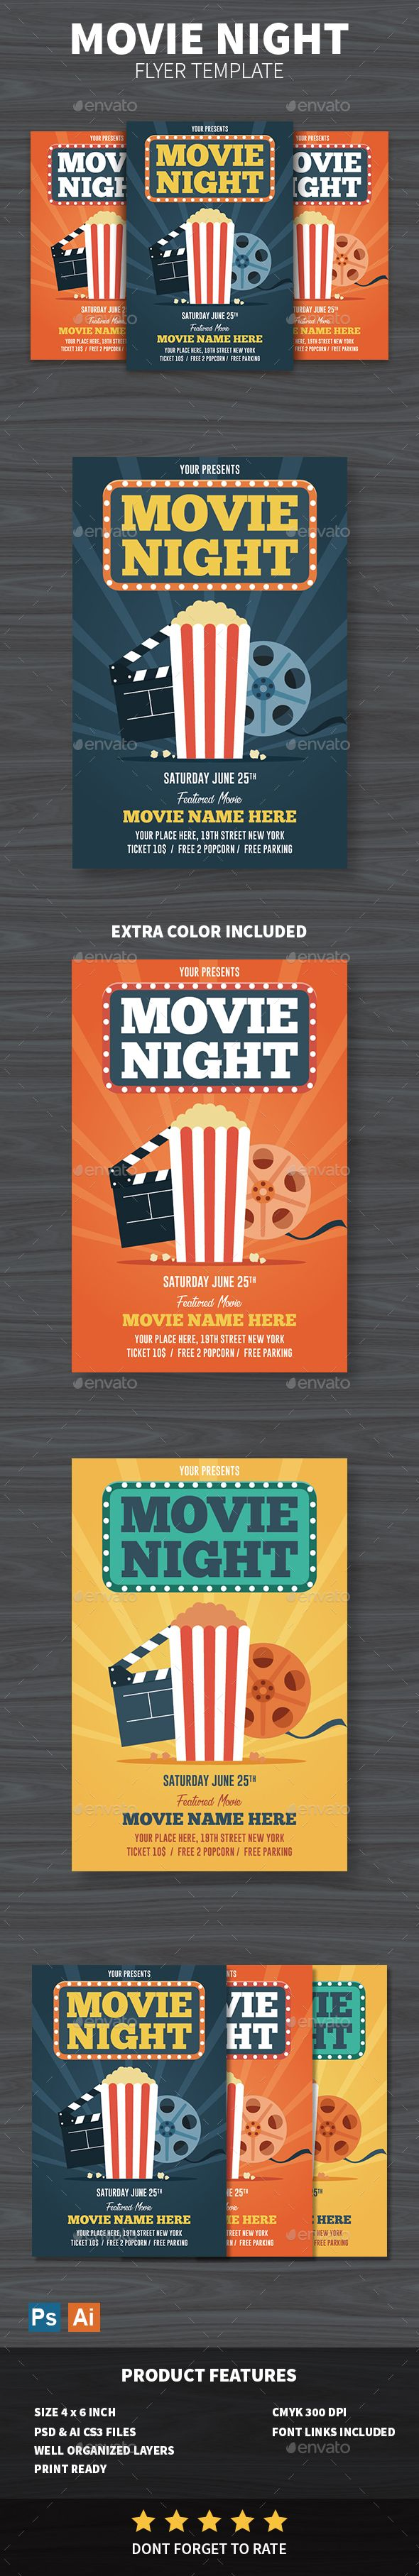 movie night flyer template psd ai flyer templates pinterest